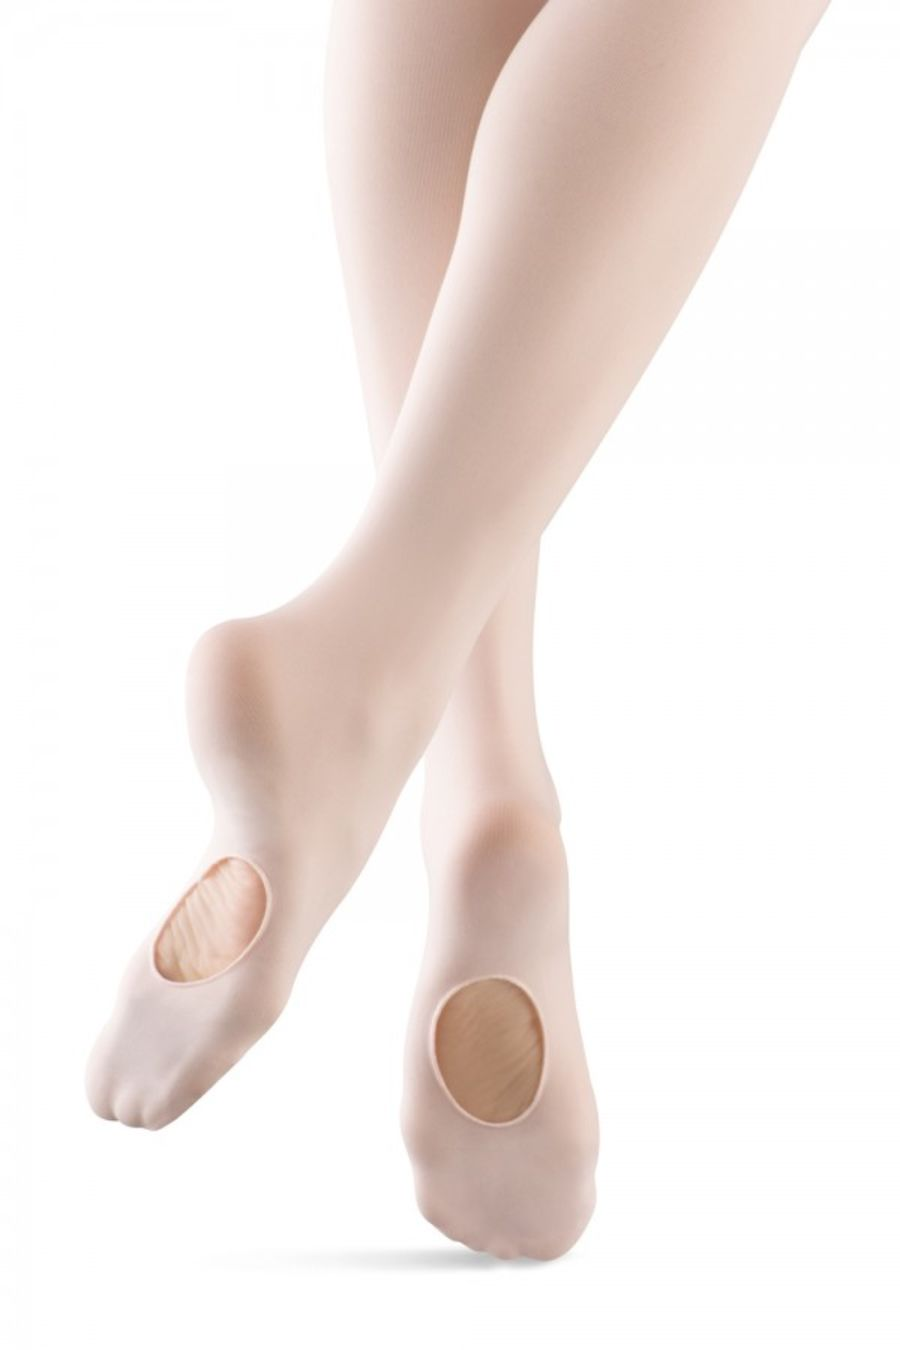 Bloch TO982 Contour Soft Convertible ballet/dance tights, Pink, Black  & Bloch Tan